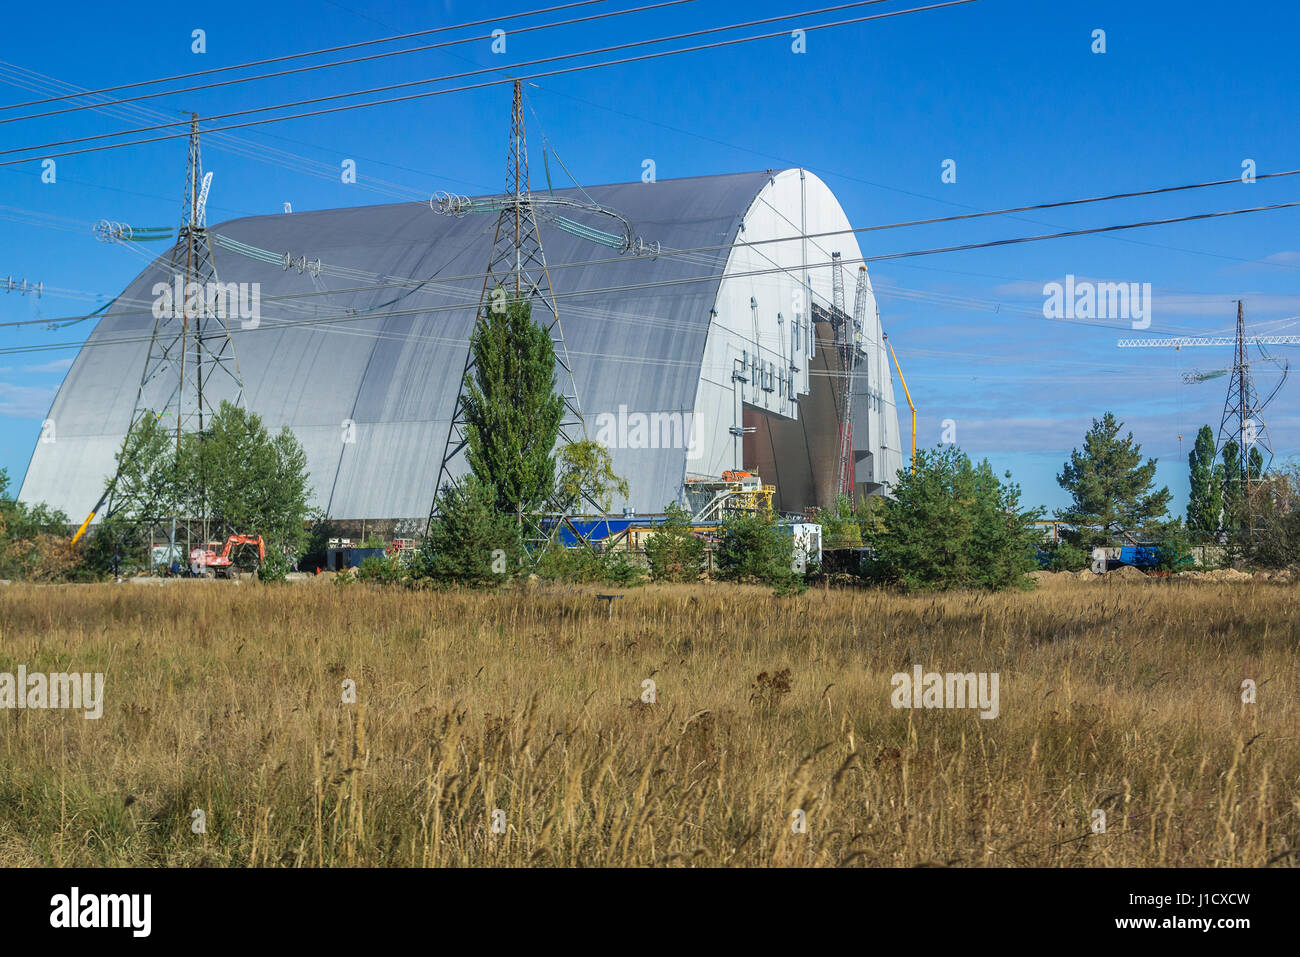 Chernobyl New Safe Confinement for No 4 unit of Chernobyl